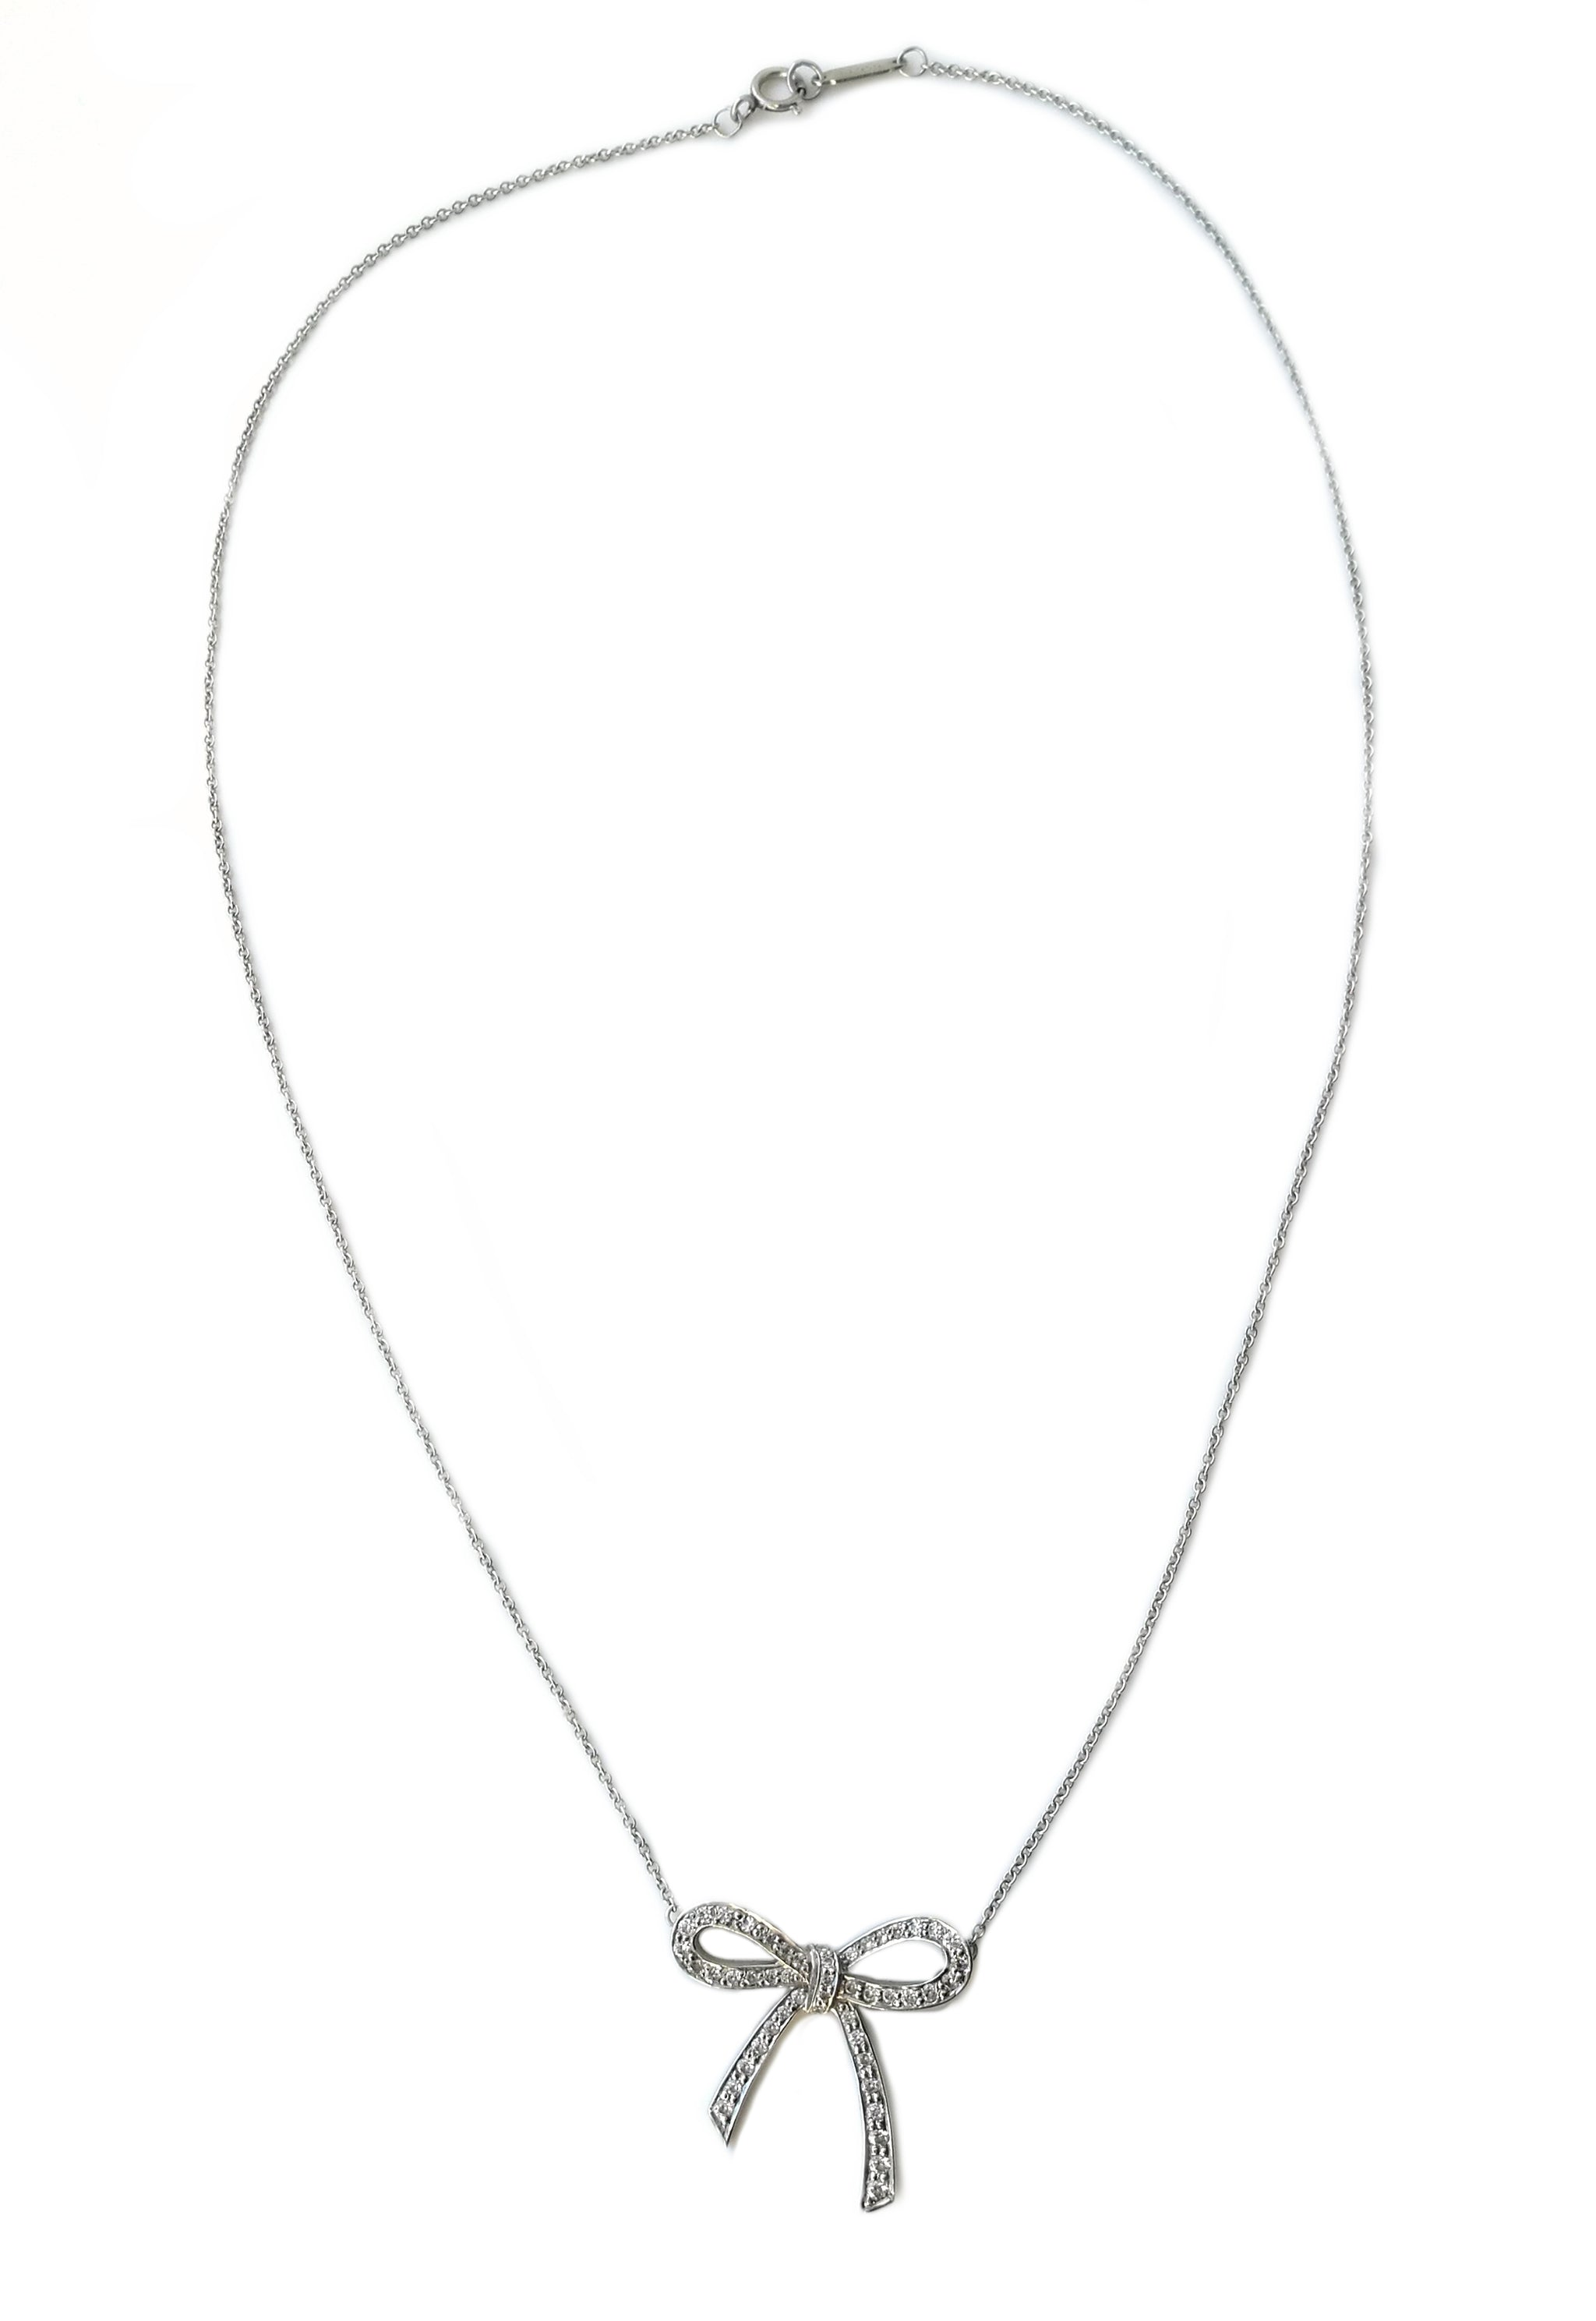 3c7d911ac8344 Tiffany & Co Bow Diamond Necklace .27ct Platinum 16 in